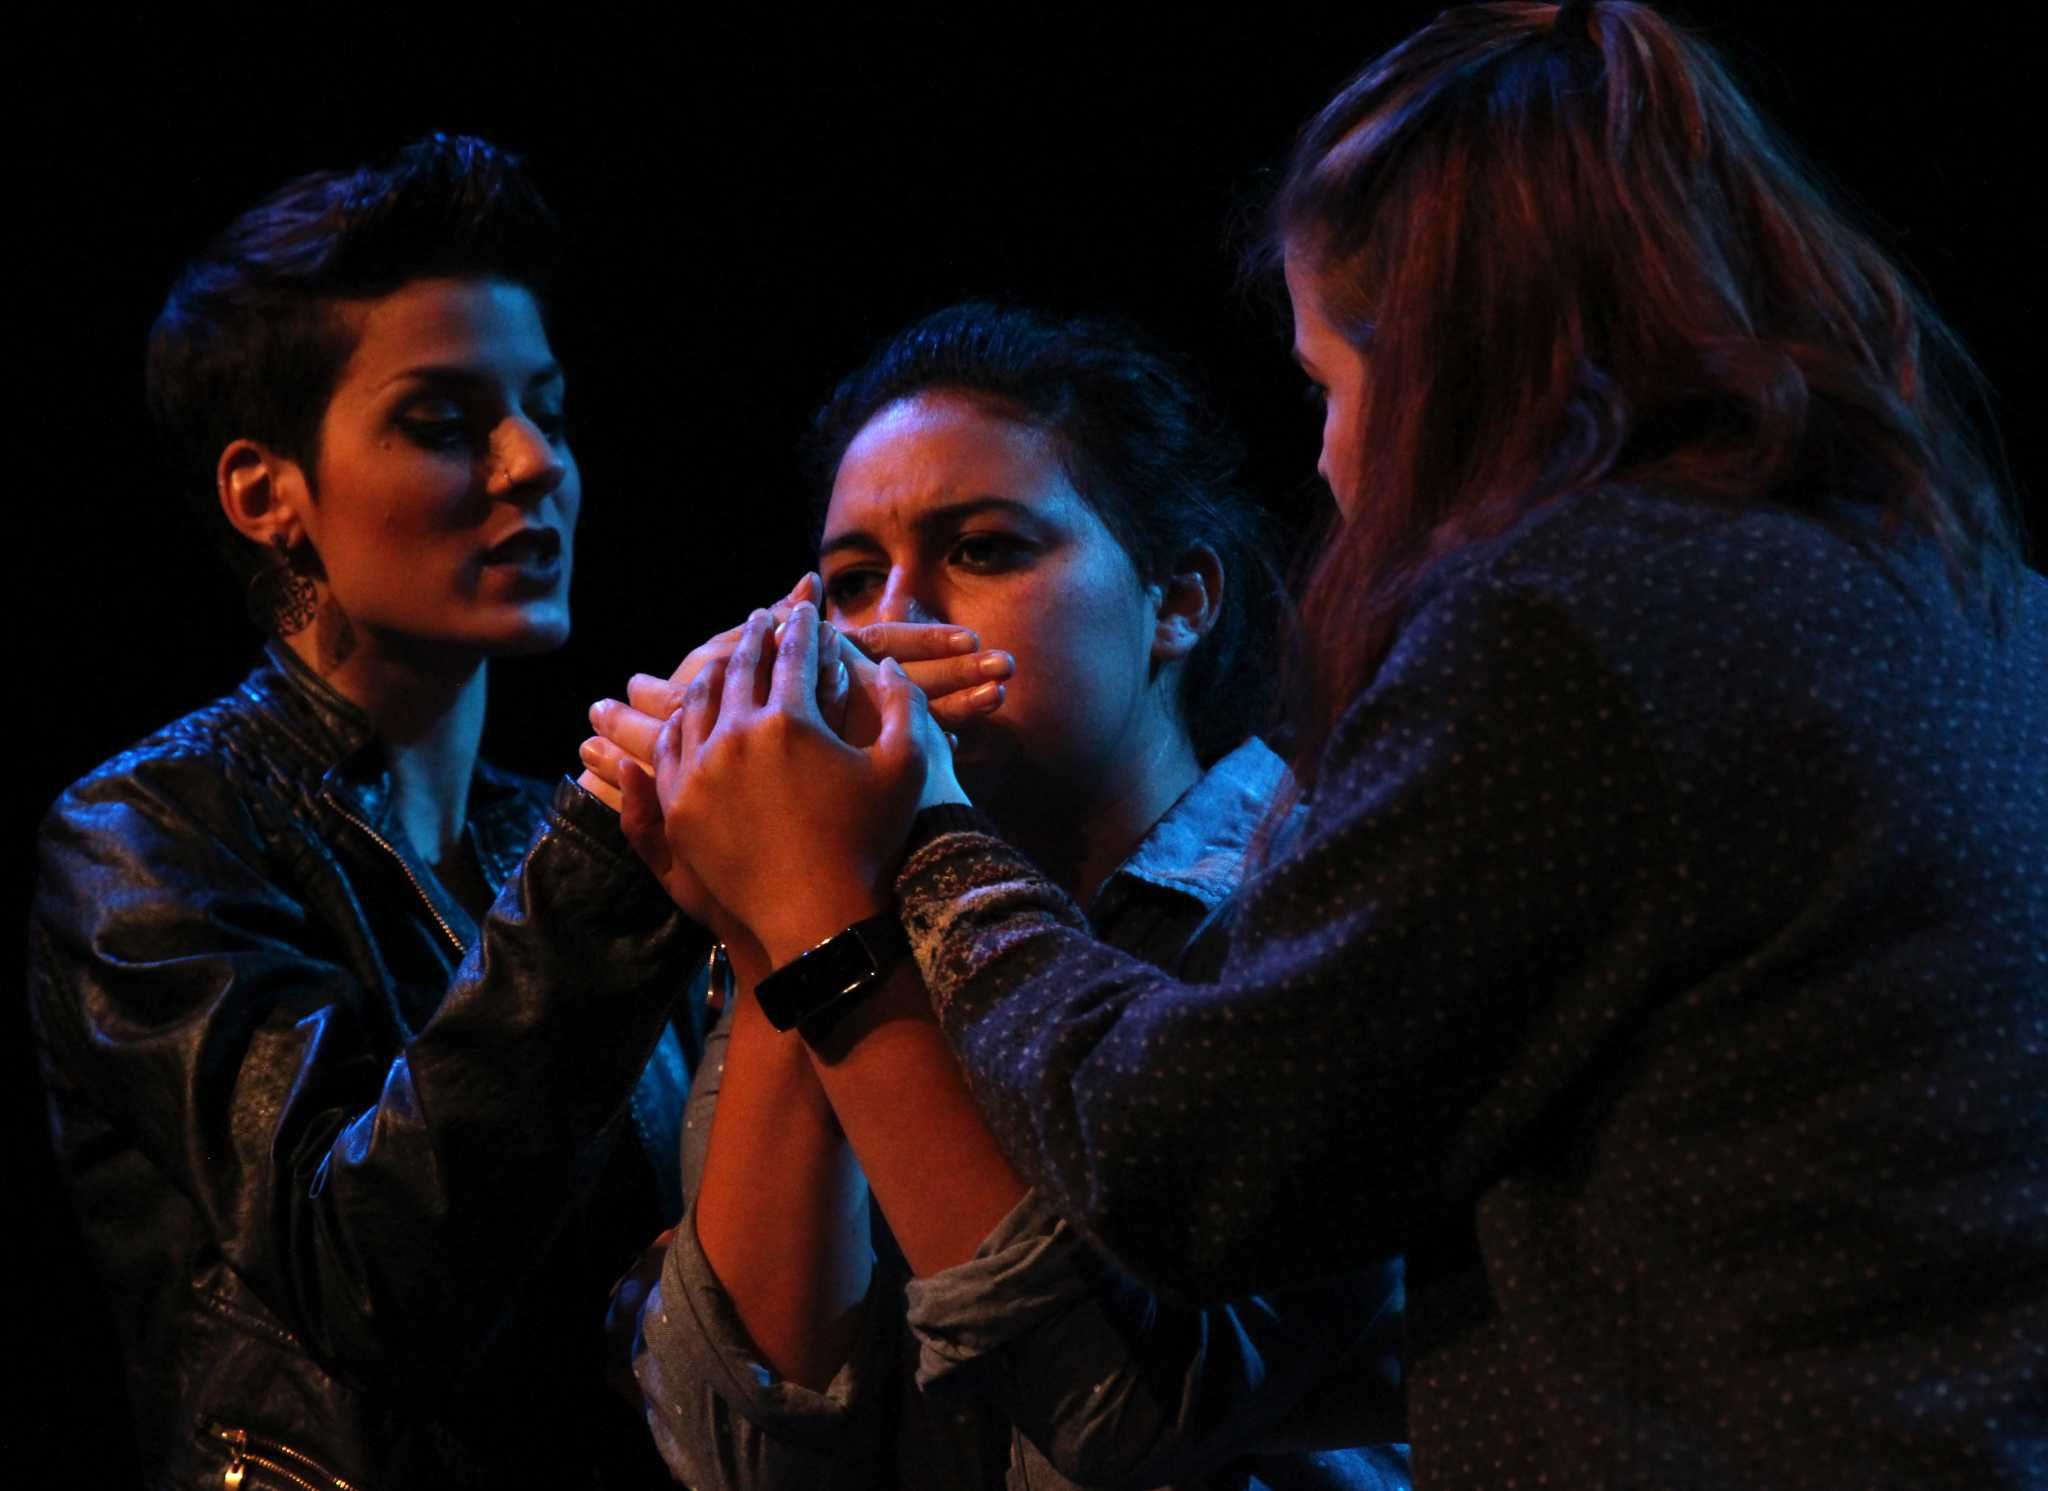 Theater art students Desiree Juanes (left) portraying